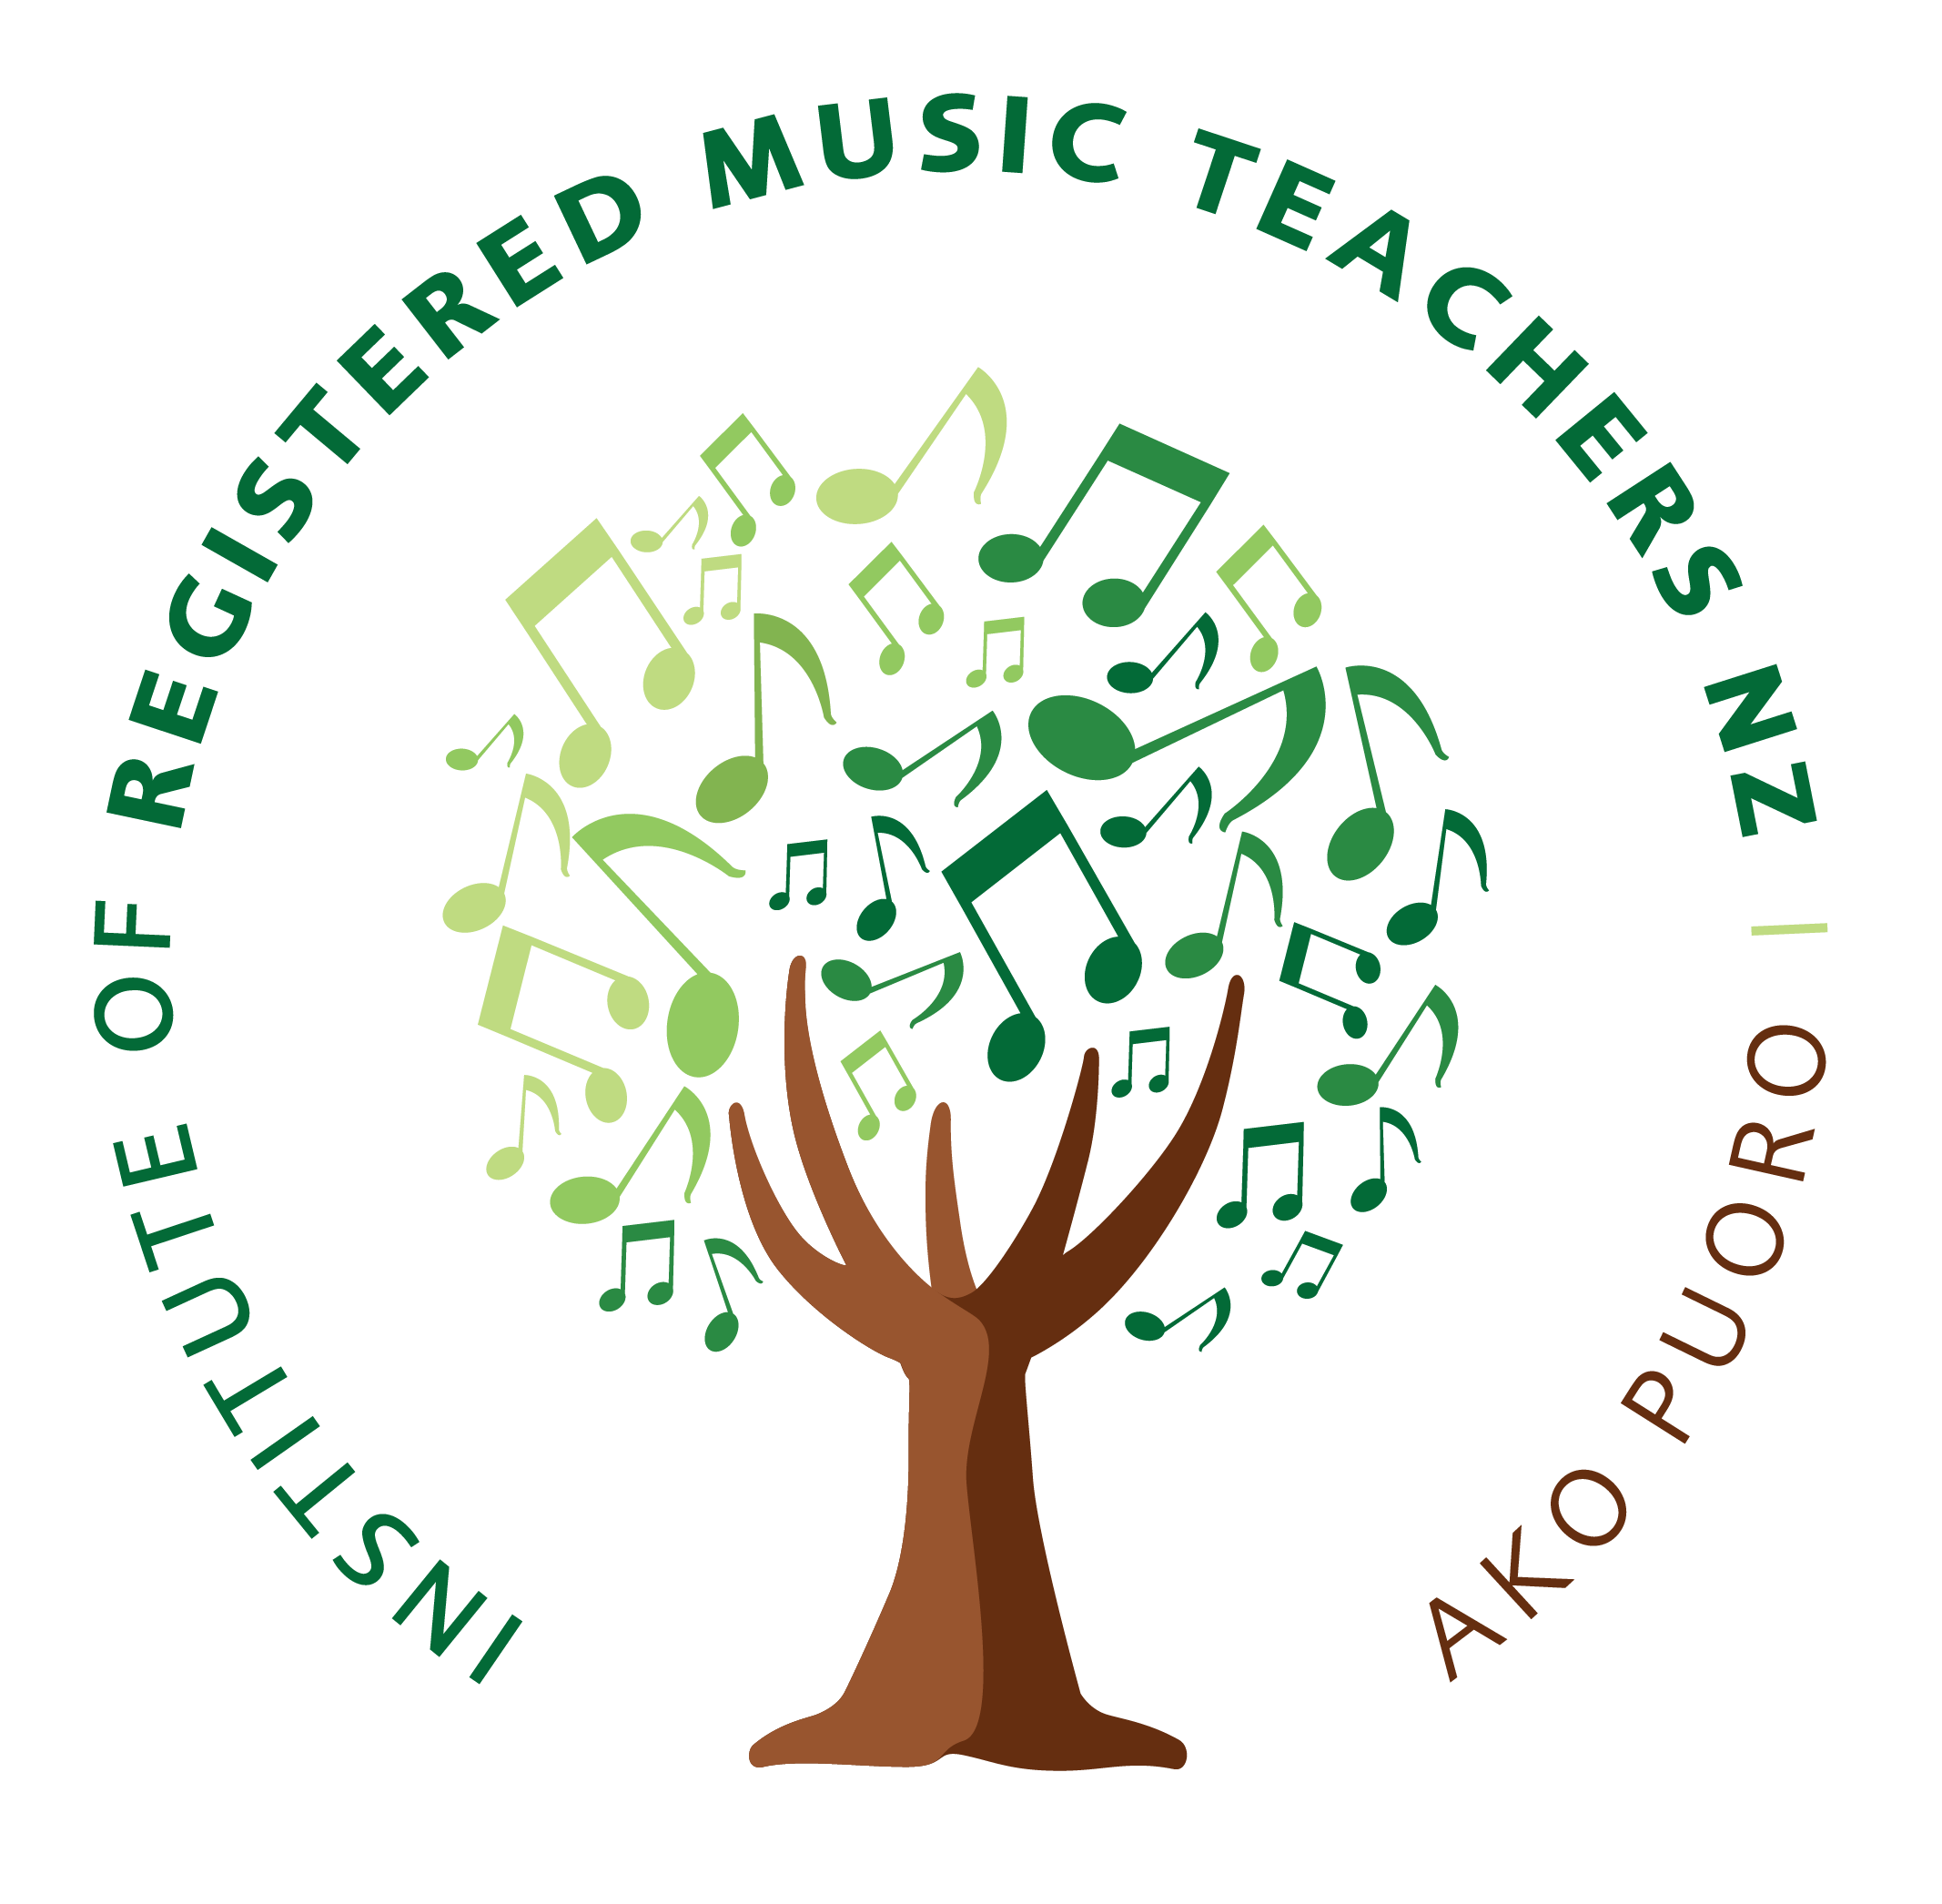 Institute of Registered Music Teachers NZ